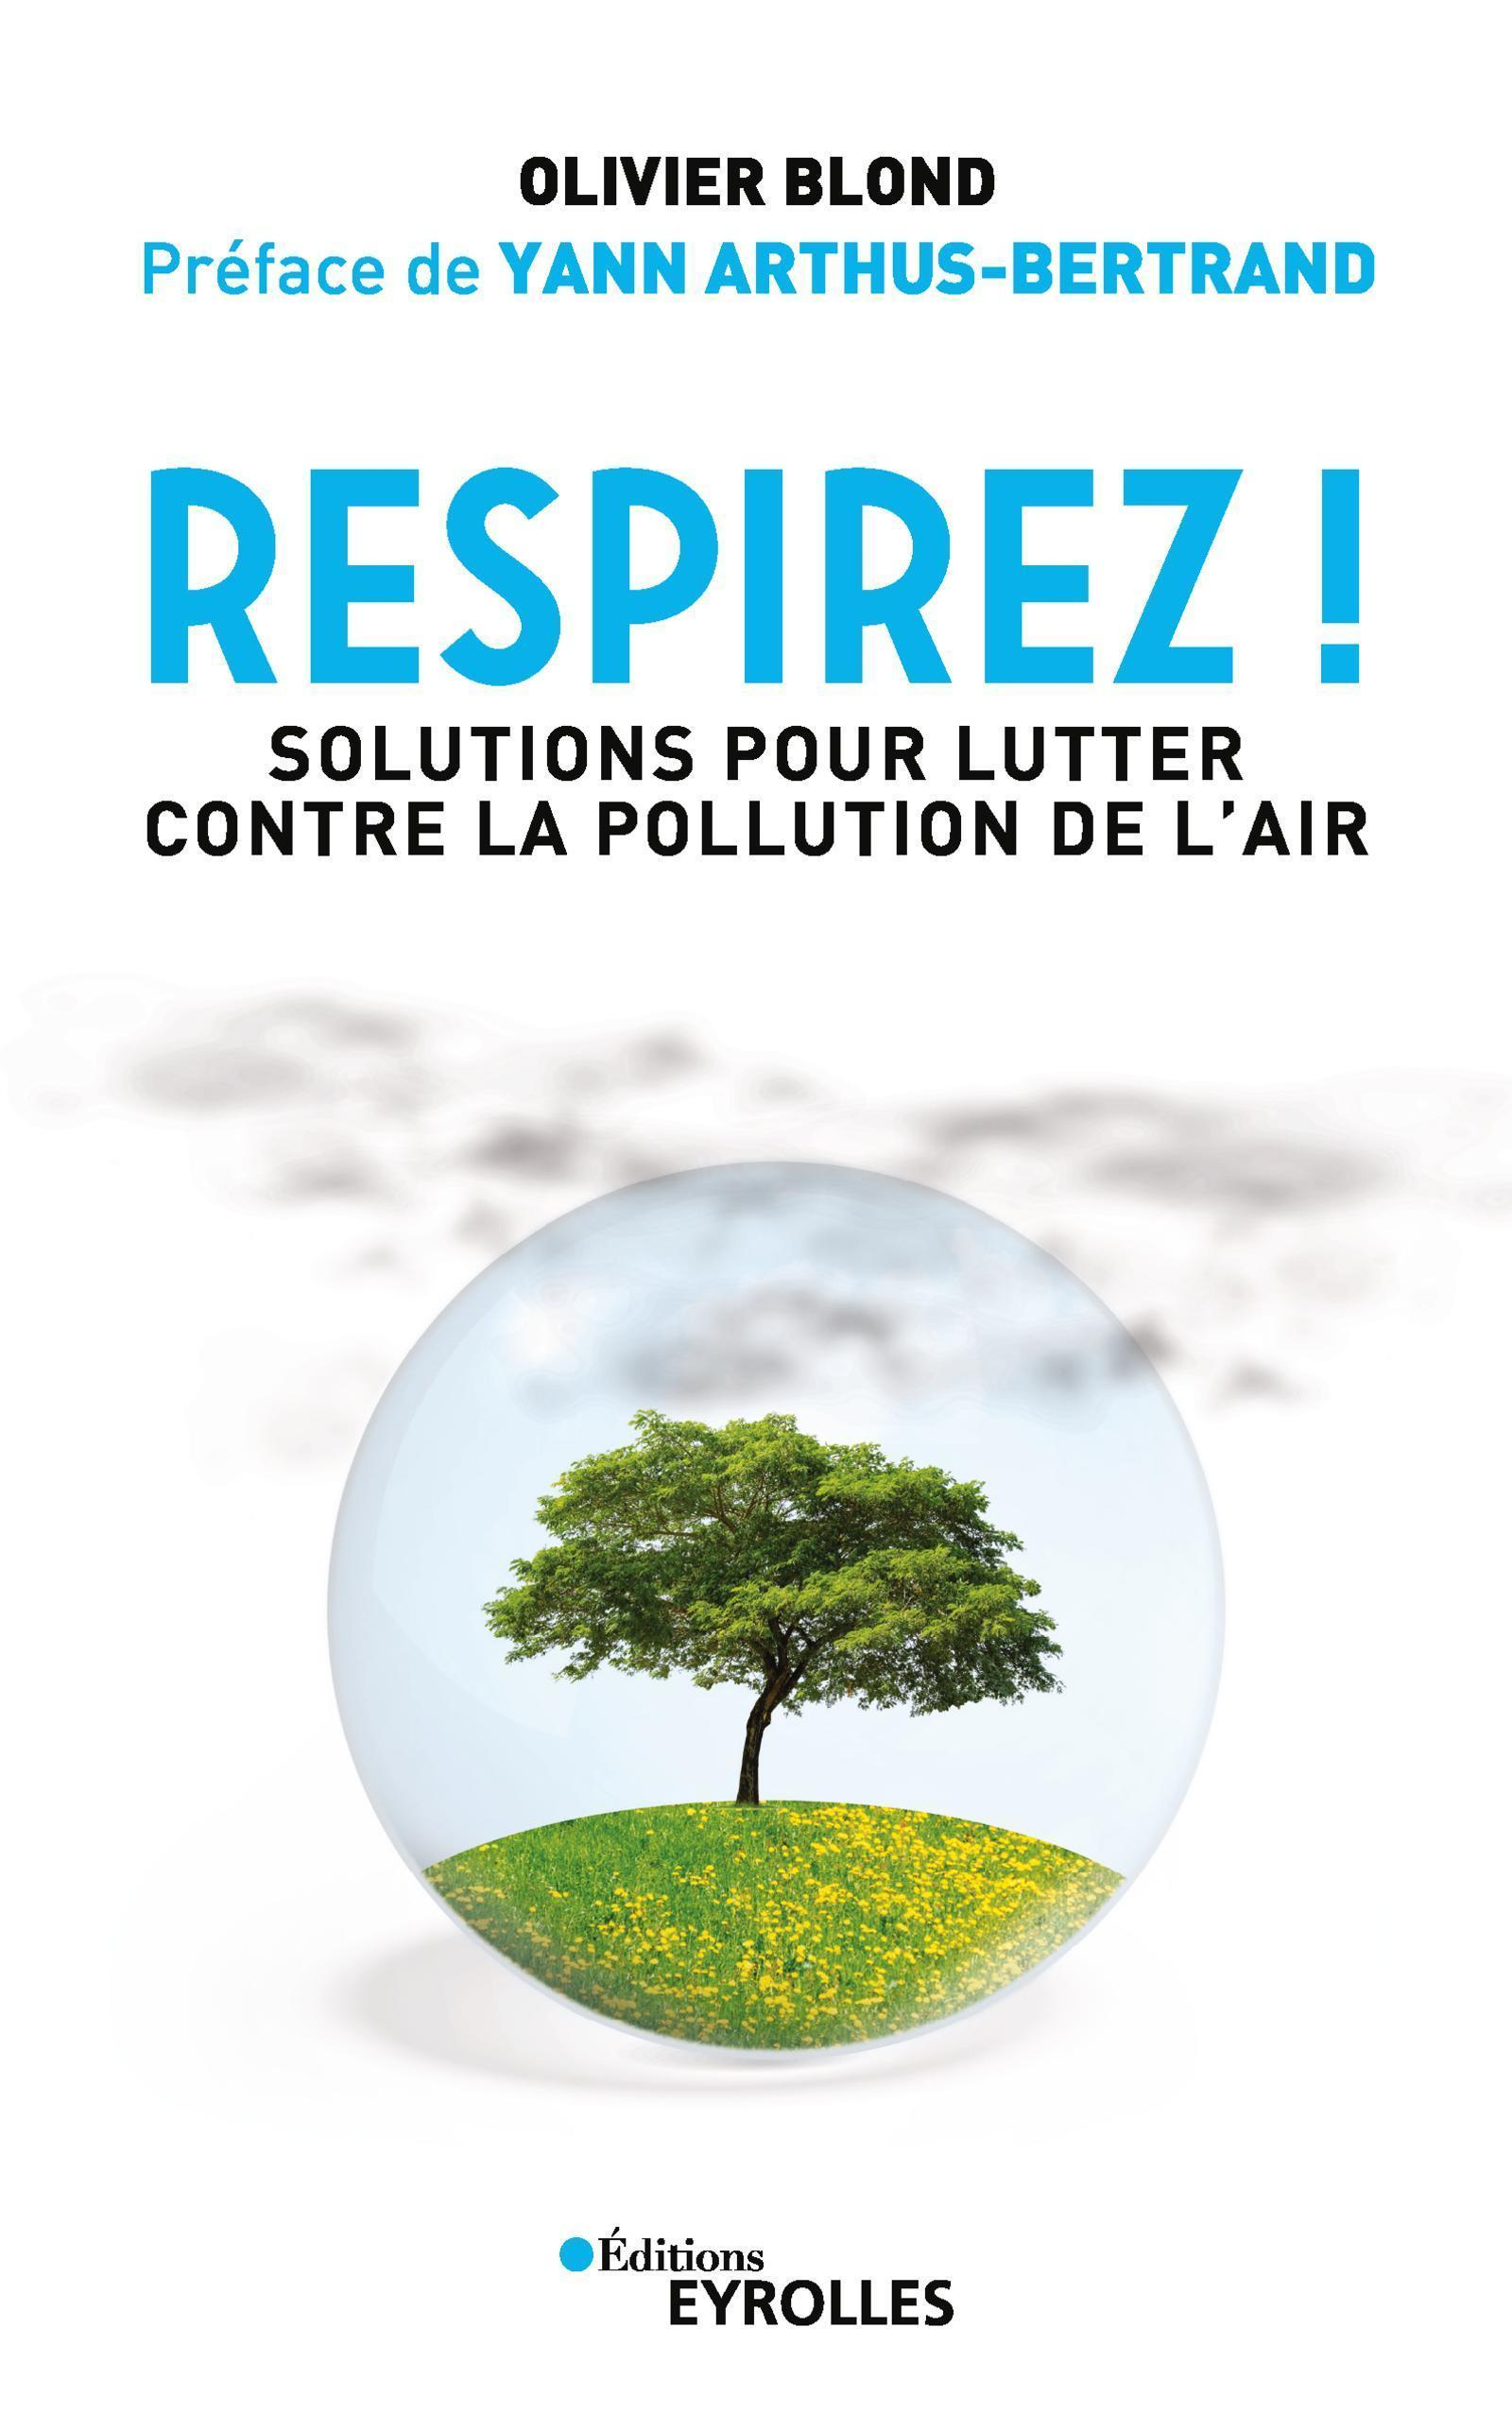 RESPIREZ ! - SOLUTIONS POUR LUTTER CONTRE LA POLLUTION DE L'AIR